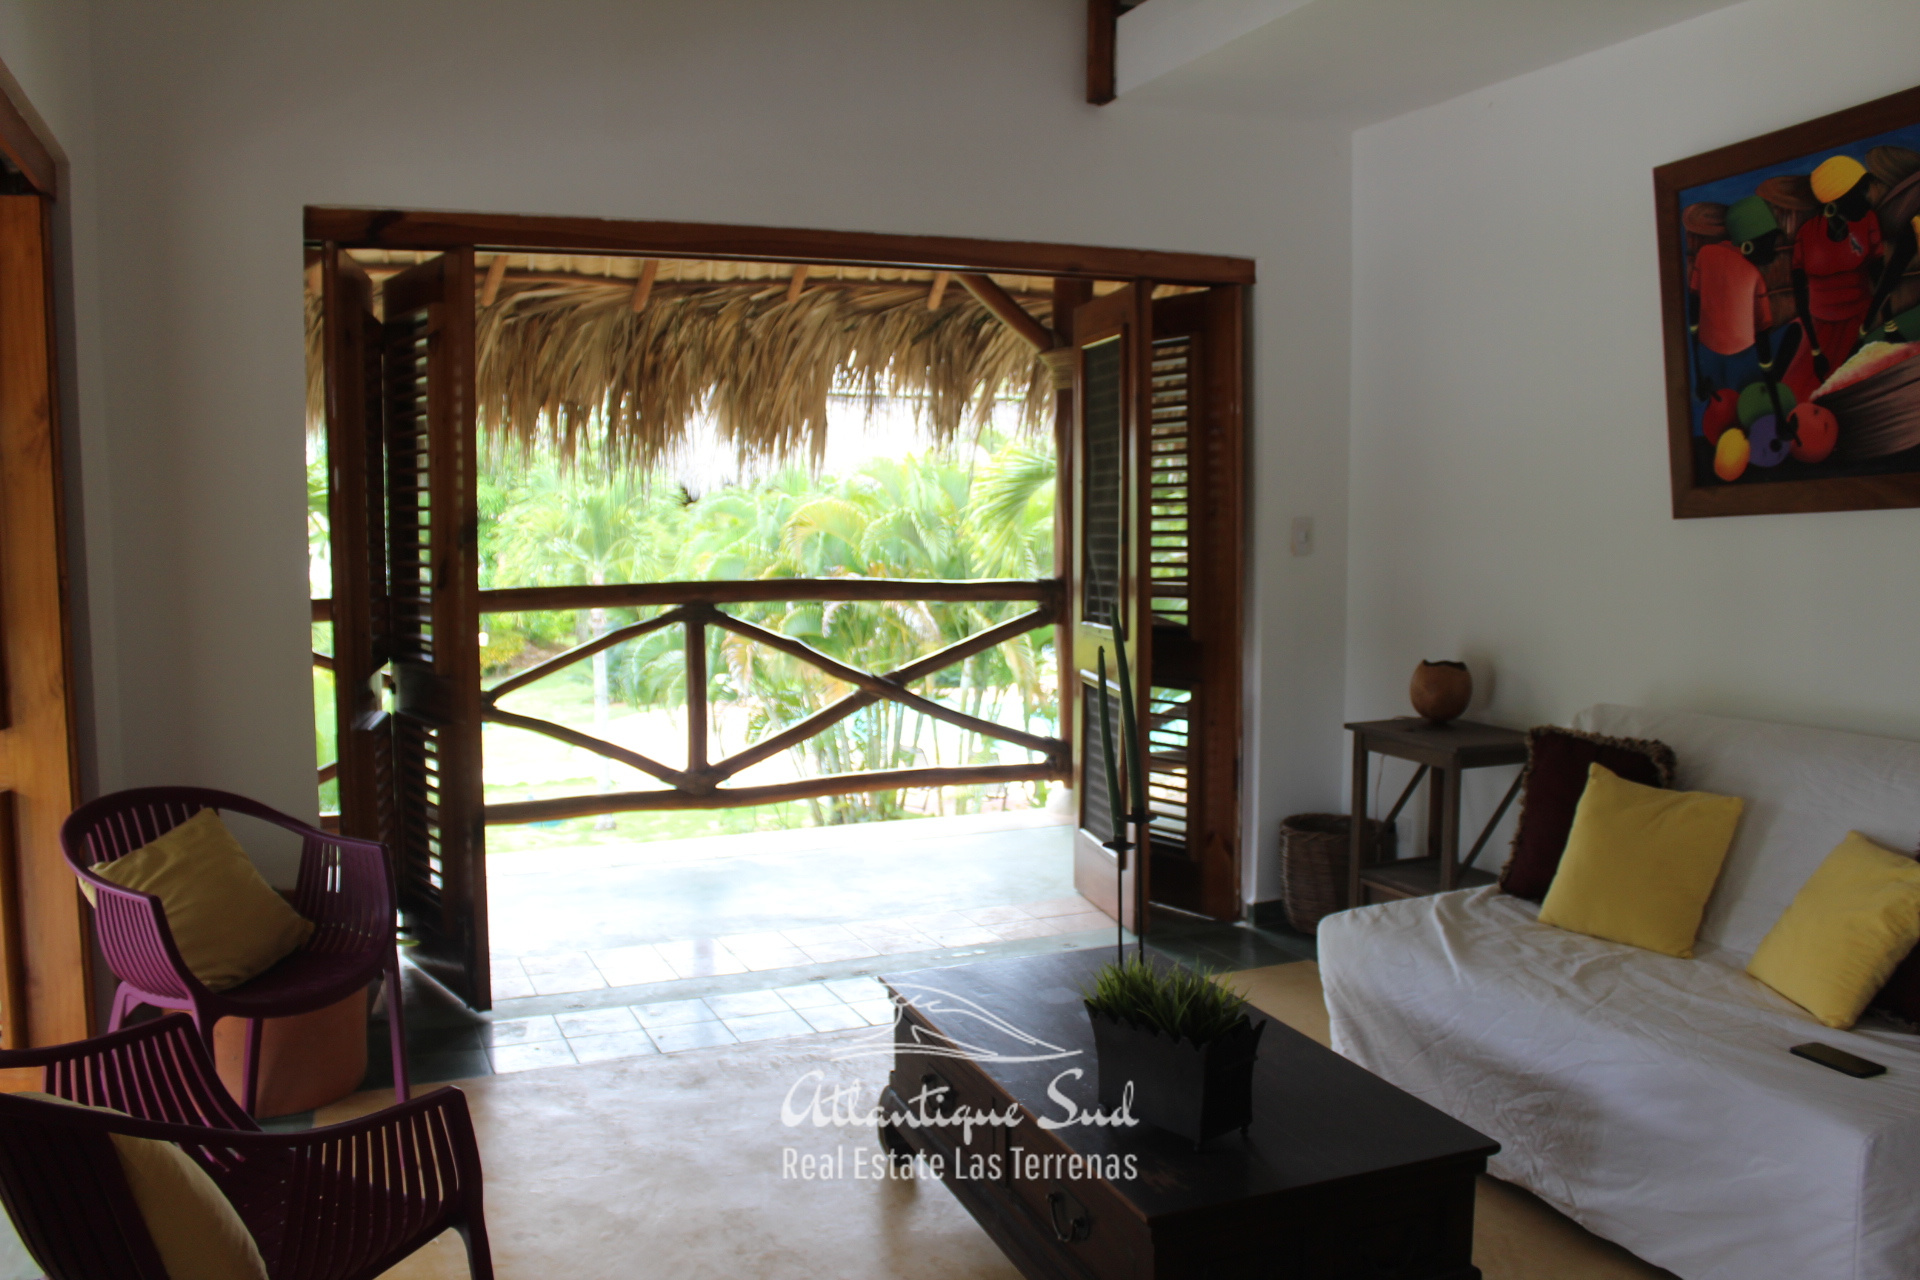 For-sale-Apartment-in-beachfront-community-with-mezzanine-Las-Terrenas_4807 (1).JPG